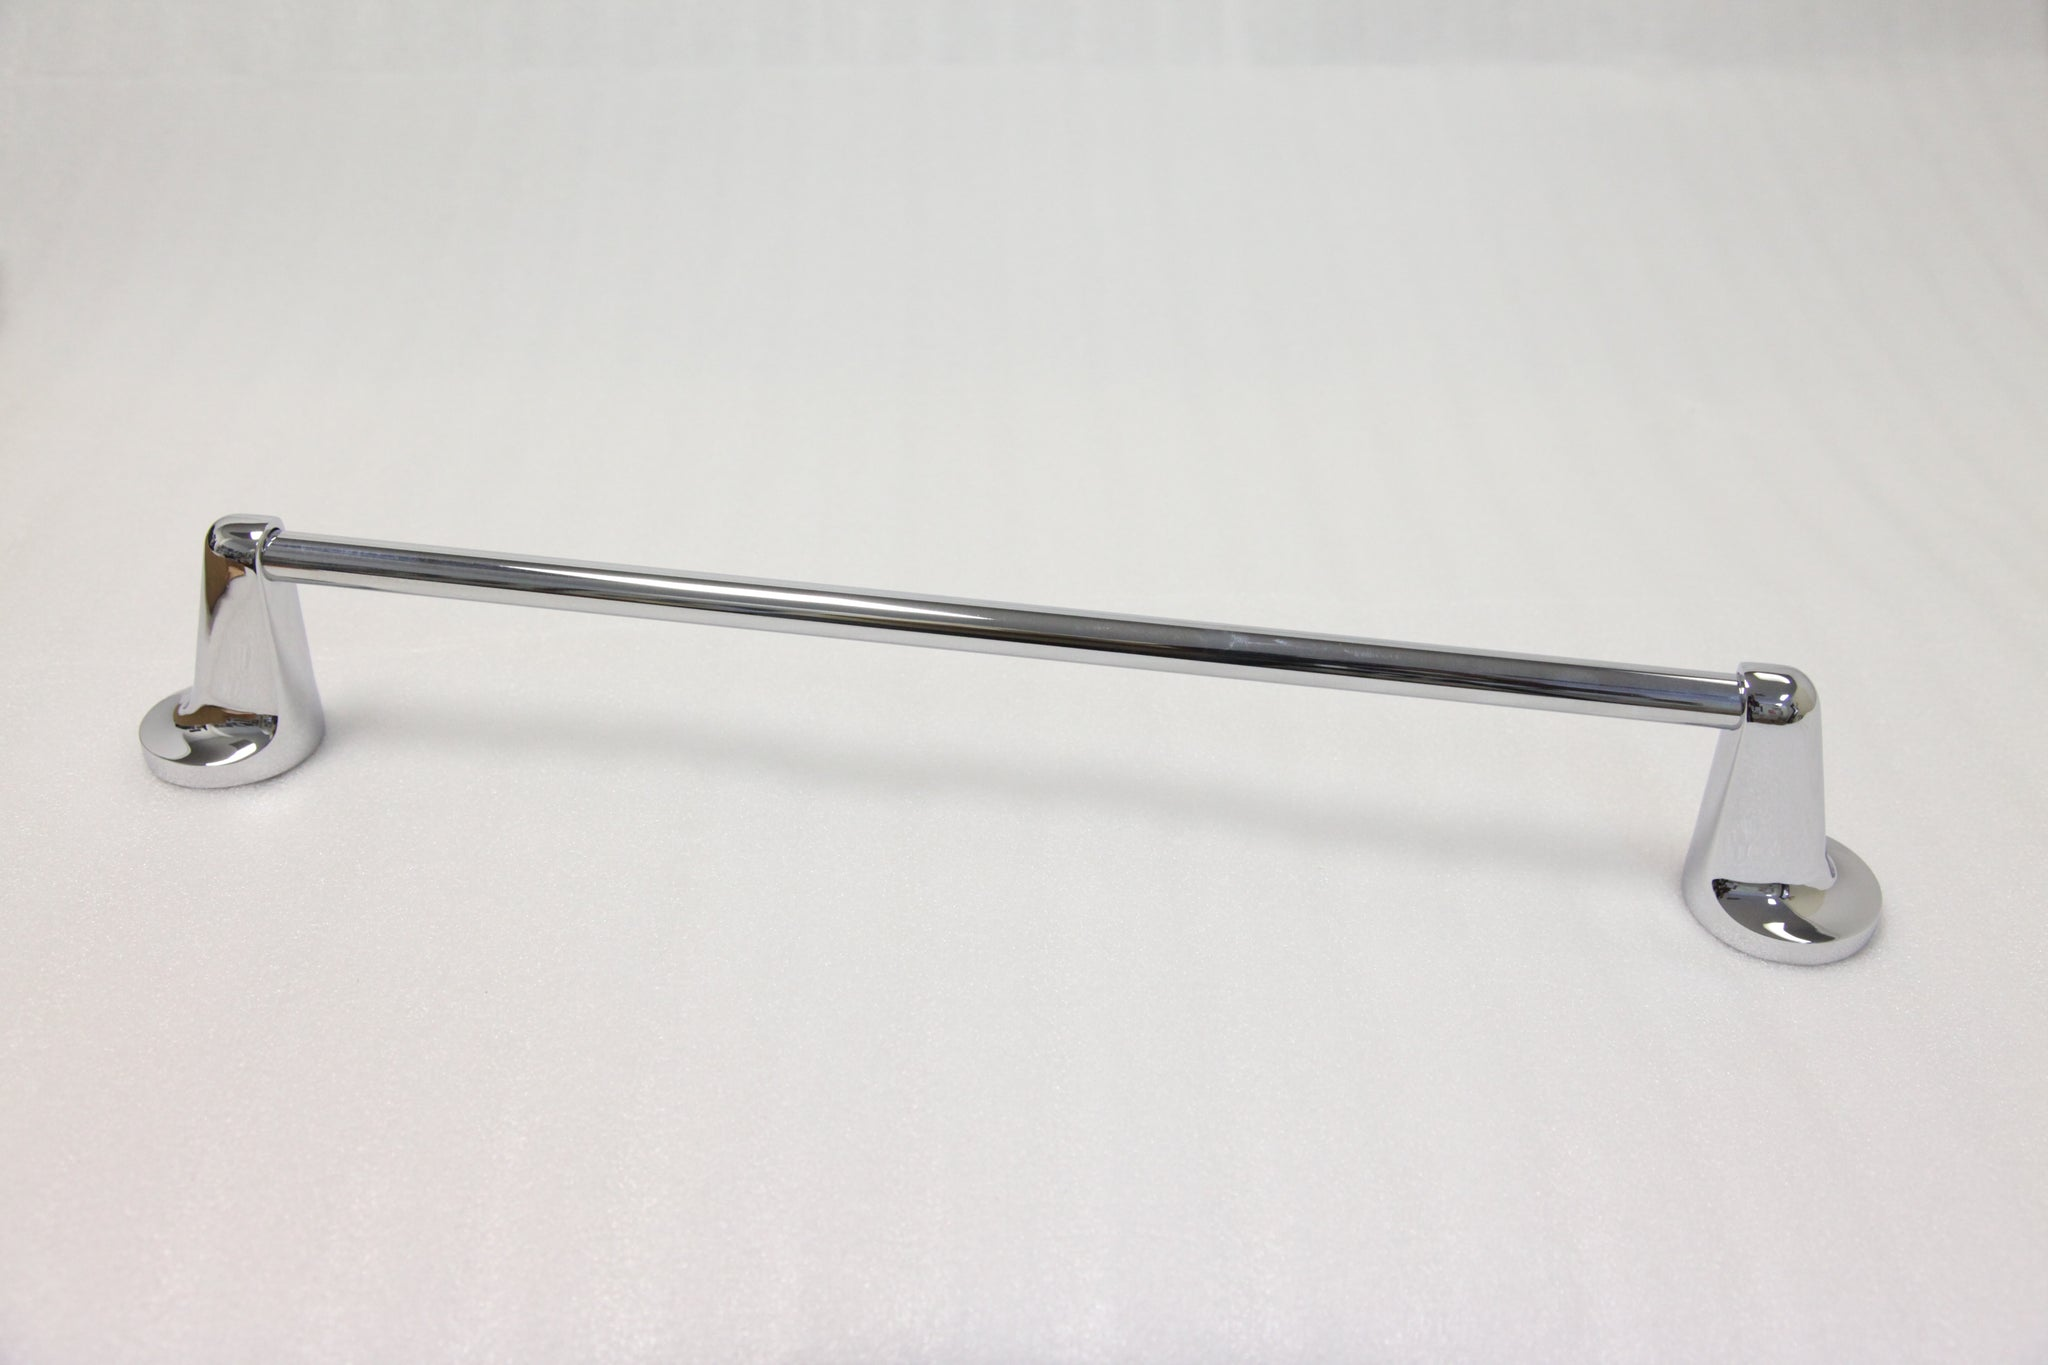 Single Towel Bar 900 mm